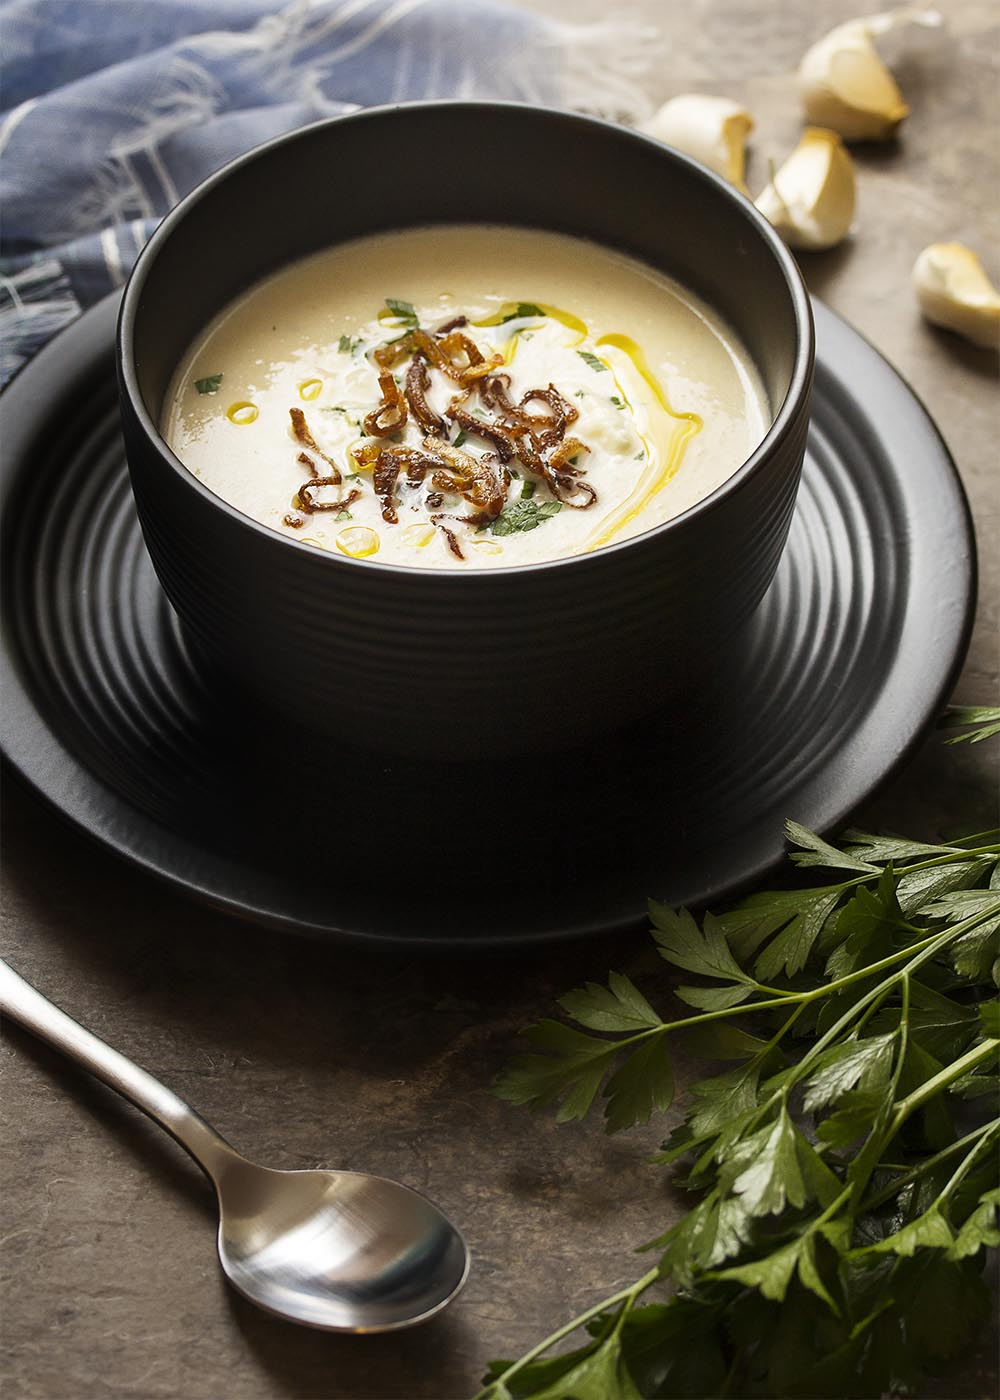 This smooth and creamy cauliflower soup is swirled with blue cheese and topped with truffle oil for great comfort food on a chilly day! | justalittlebitofbacon.com